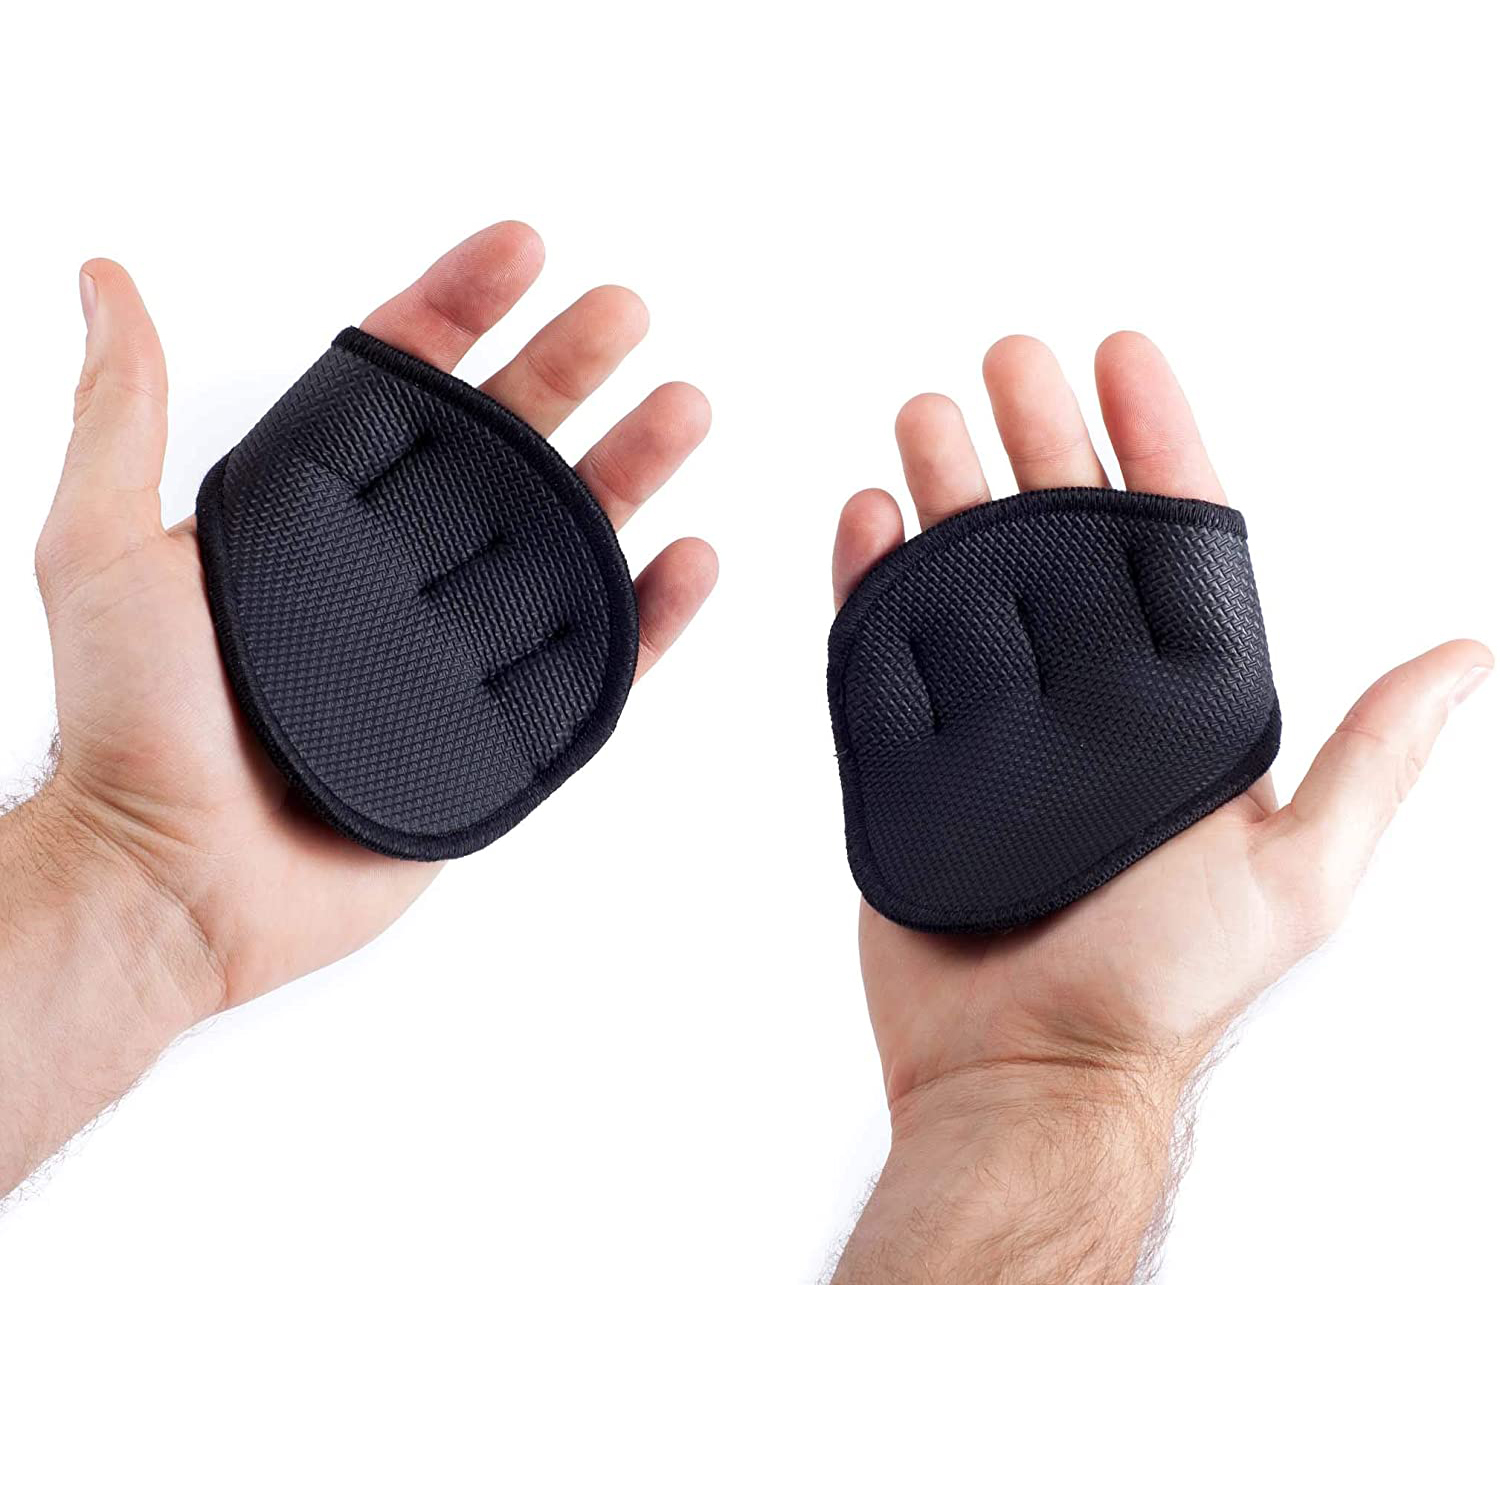 Neoprene Weightlifting Grip Pads for men and women